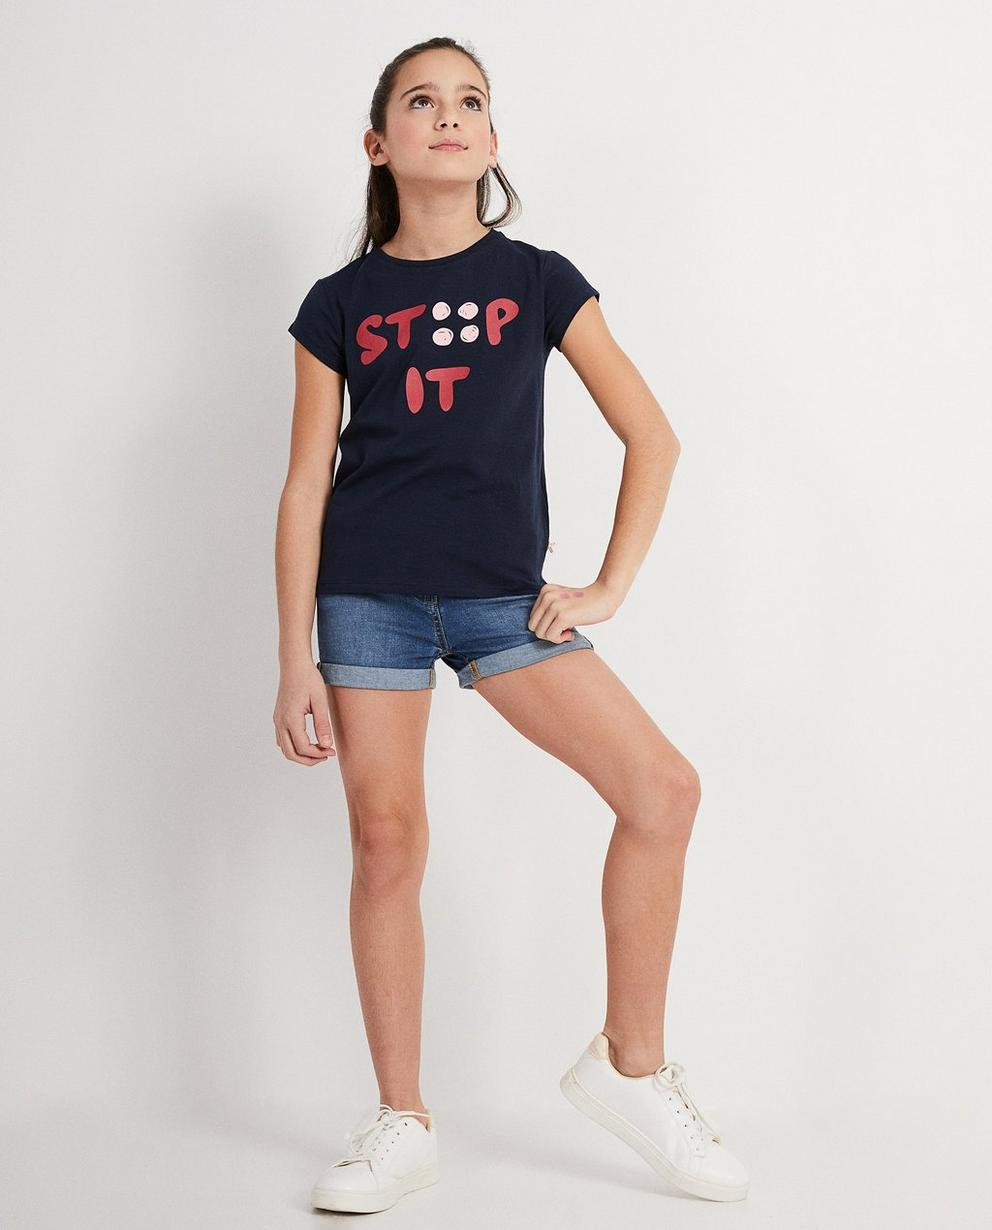 Stip it T-Shirt - Ketnet - Ketnet